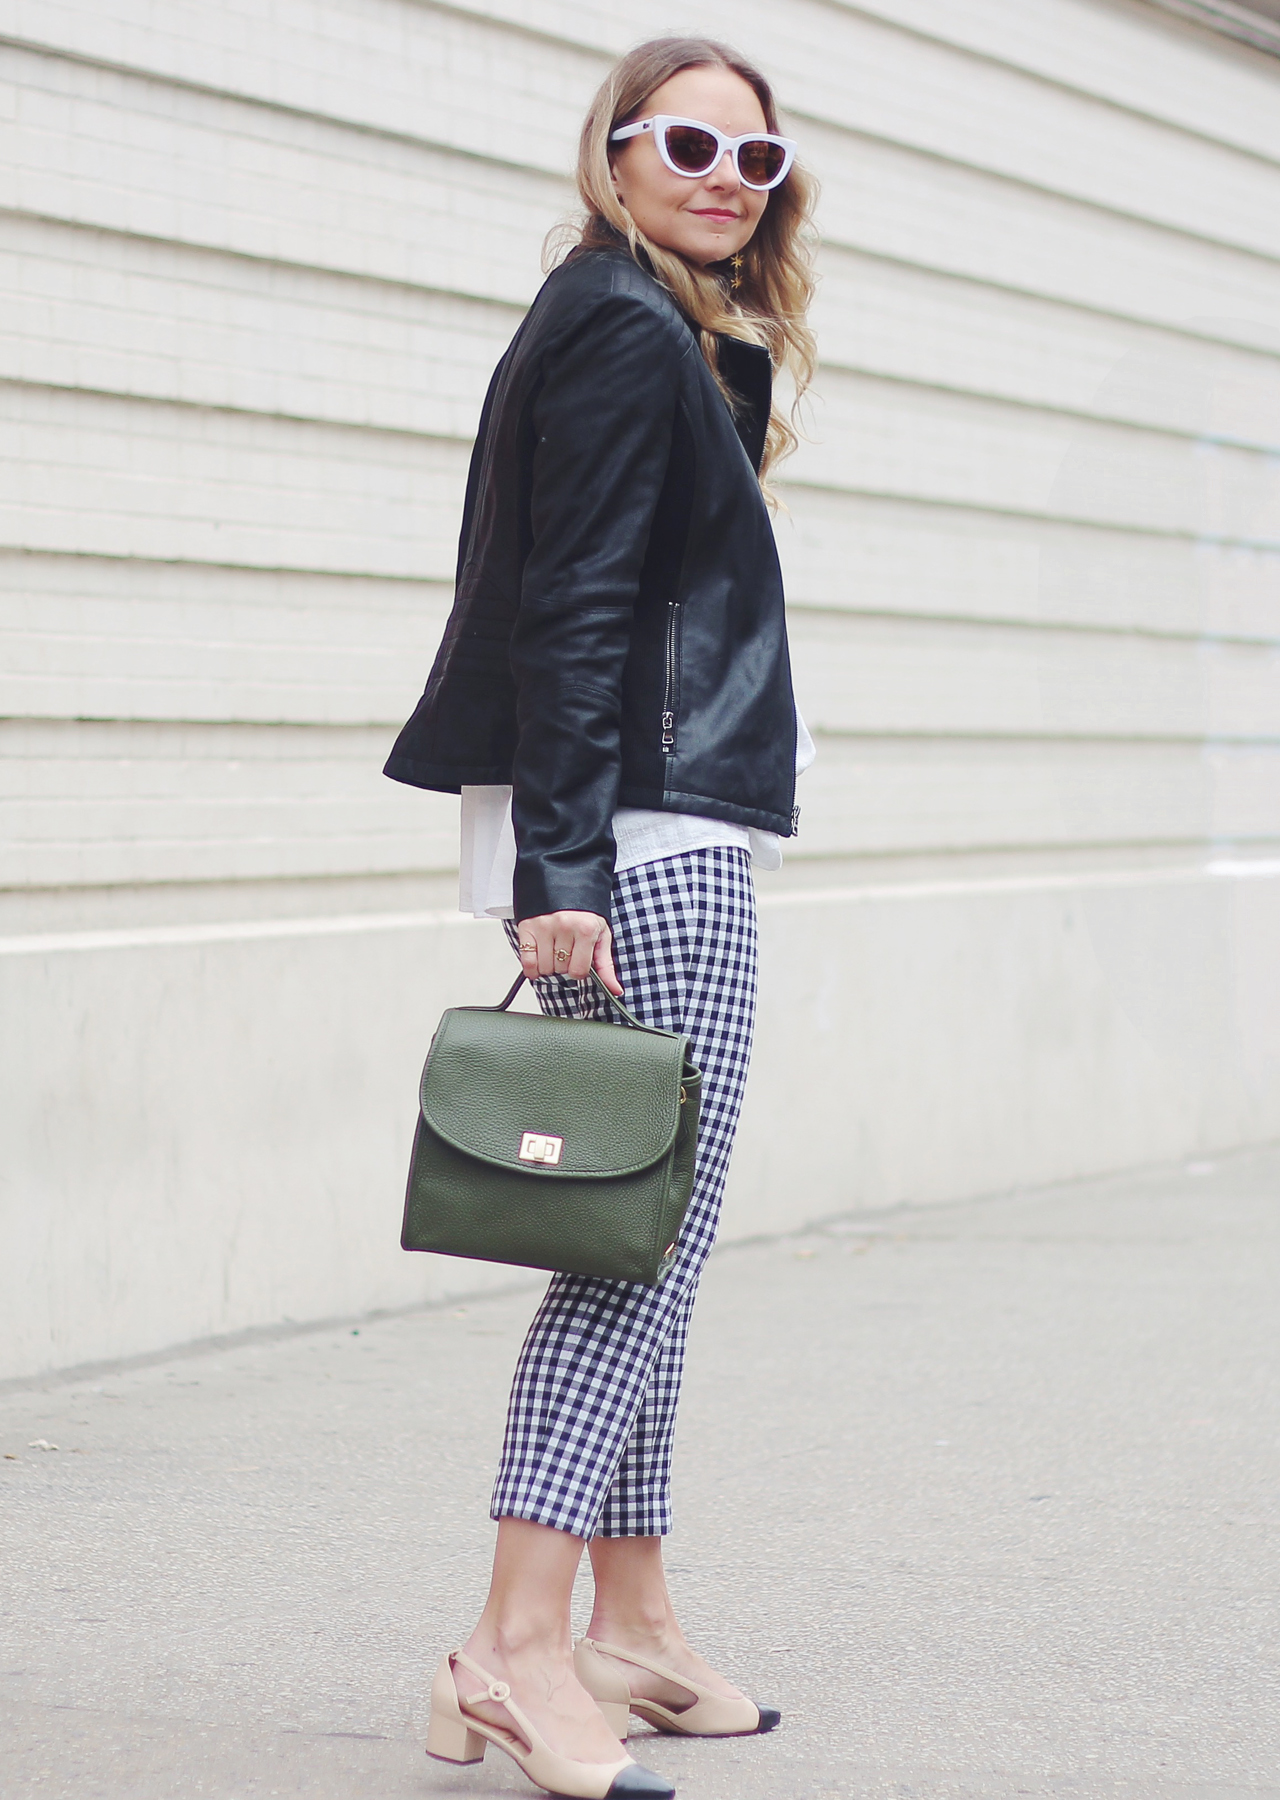 The Steele Maiden: Gingham Pants and Leather Jacket